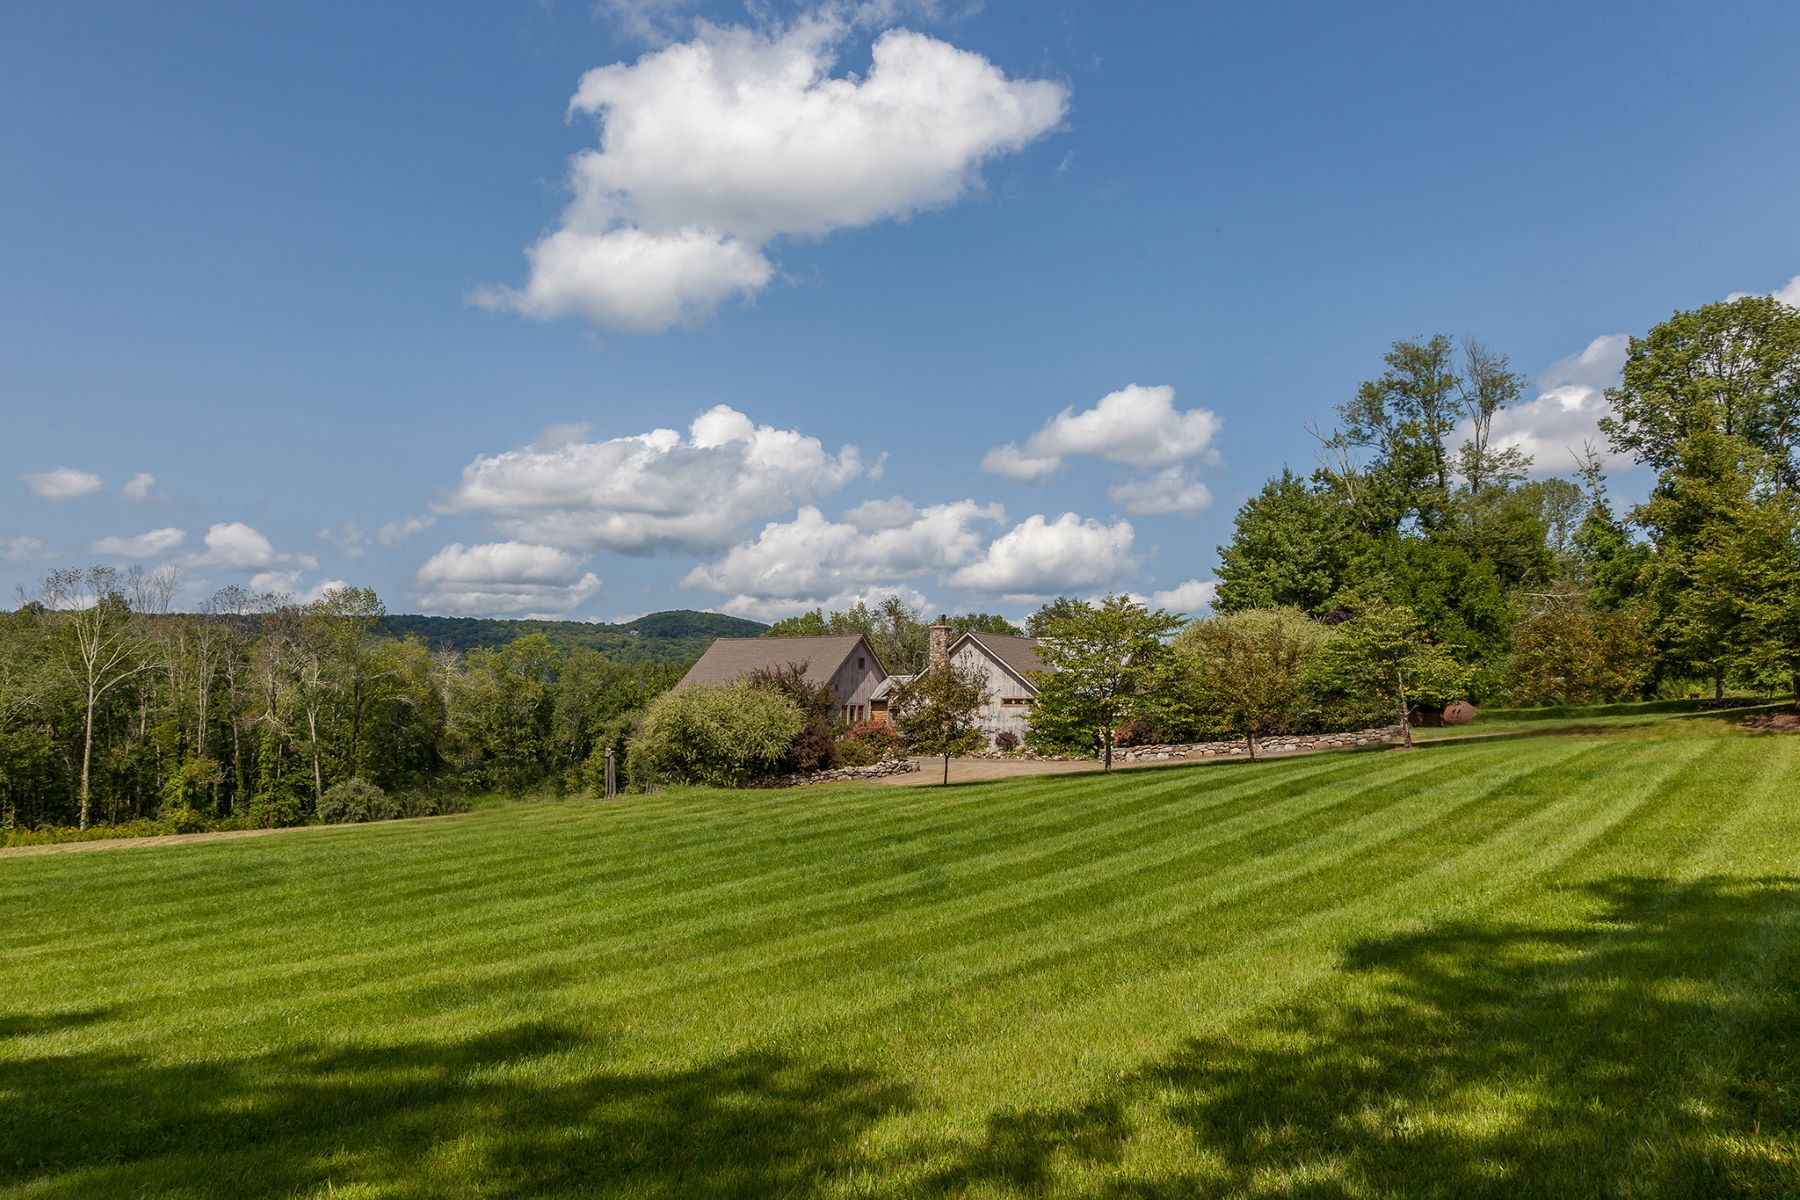 Single Family Home for Sale at Designed by Noted Artist & Studio Furniture Maker 205 Sawyer Hill Road New Milford, Connecticut 06776 United States